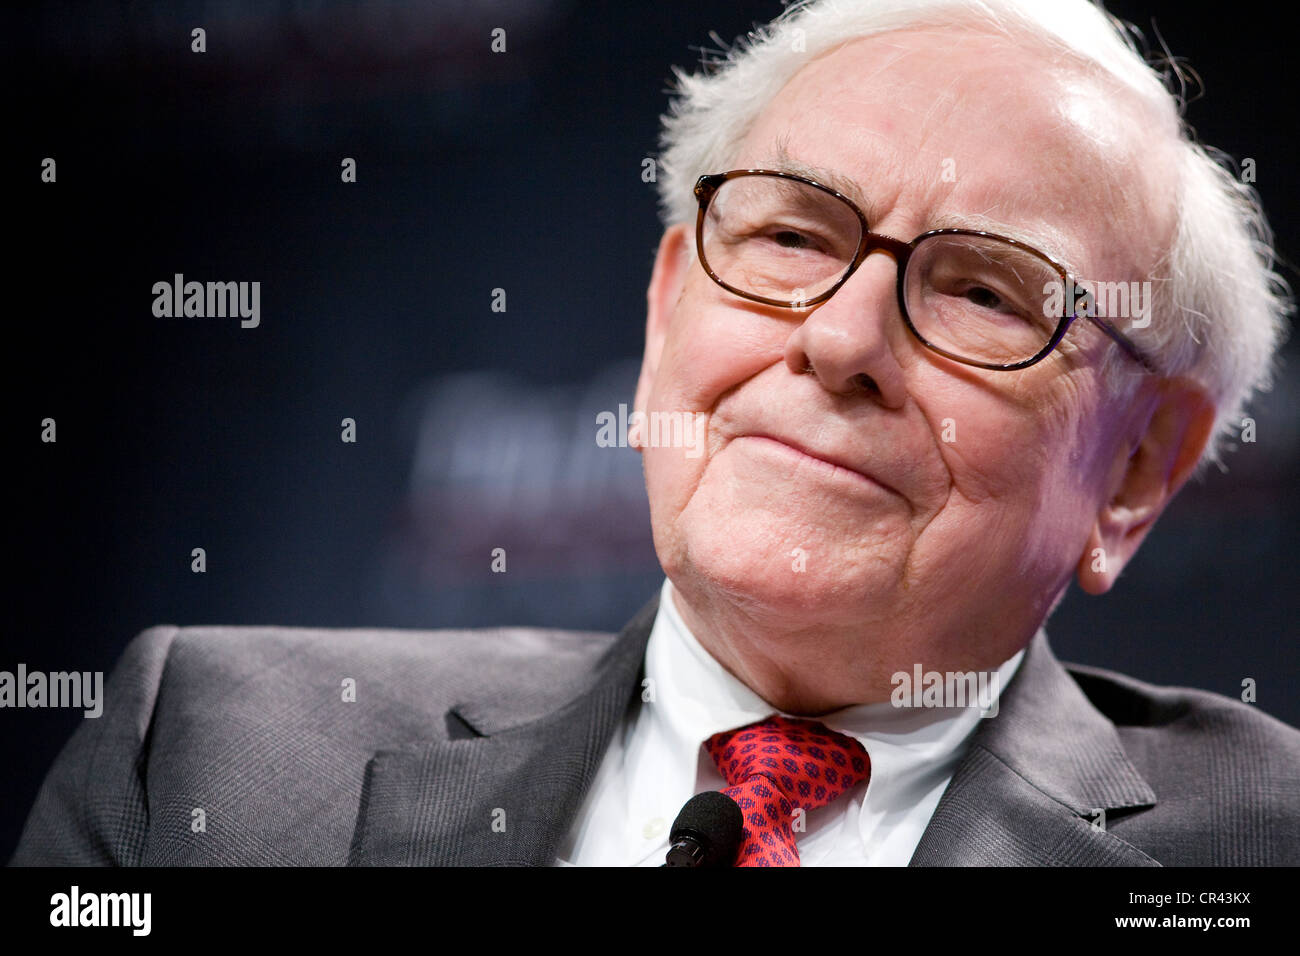 Warren Buffett, CEO of Berkshire Hathaway.  - Stock Image